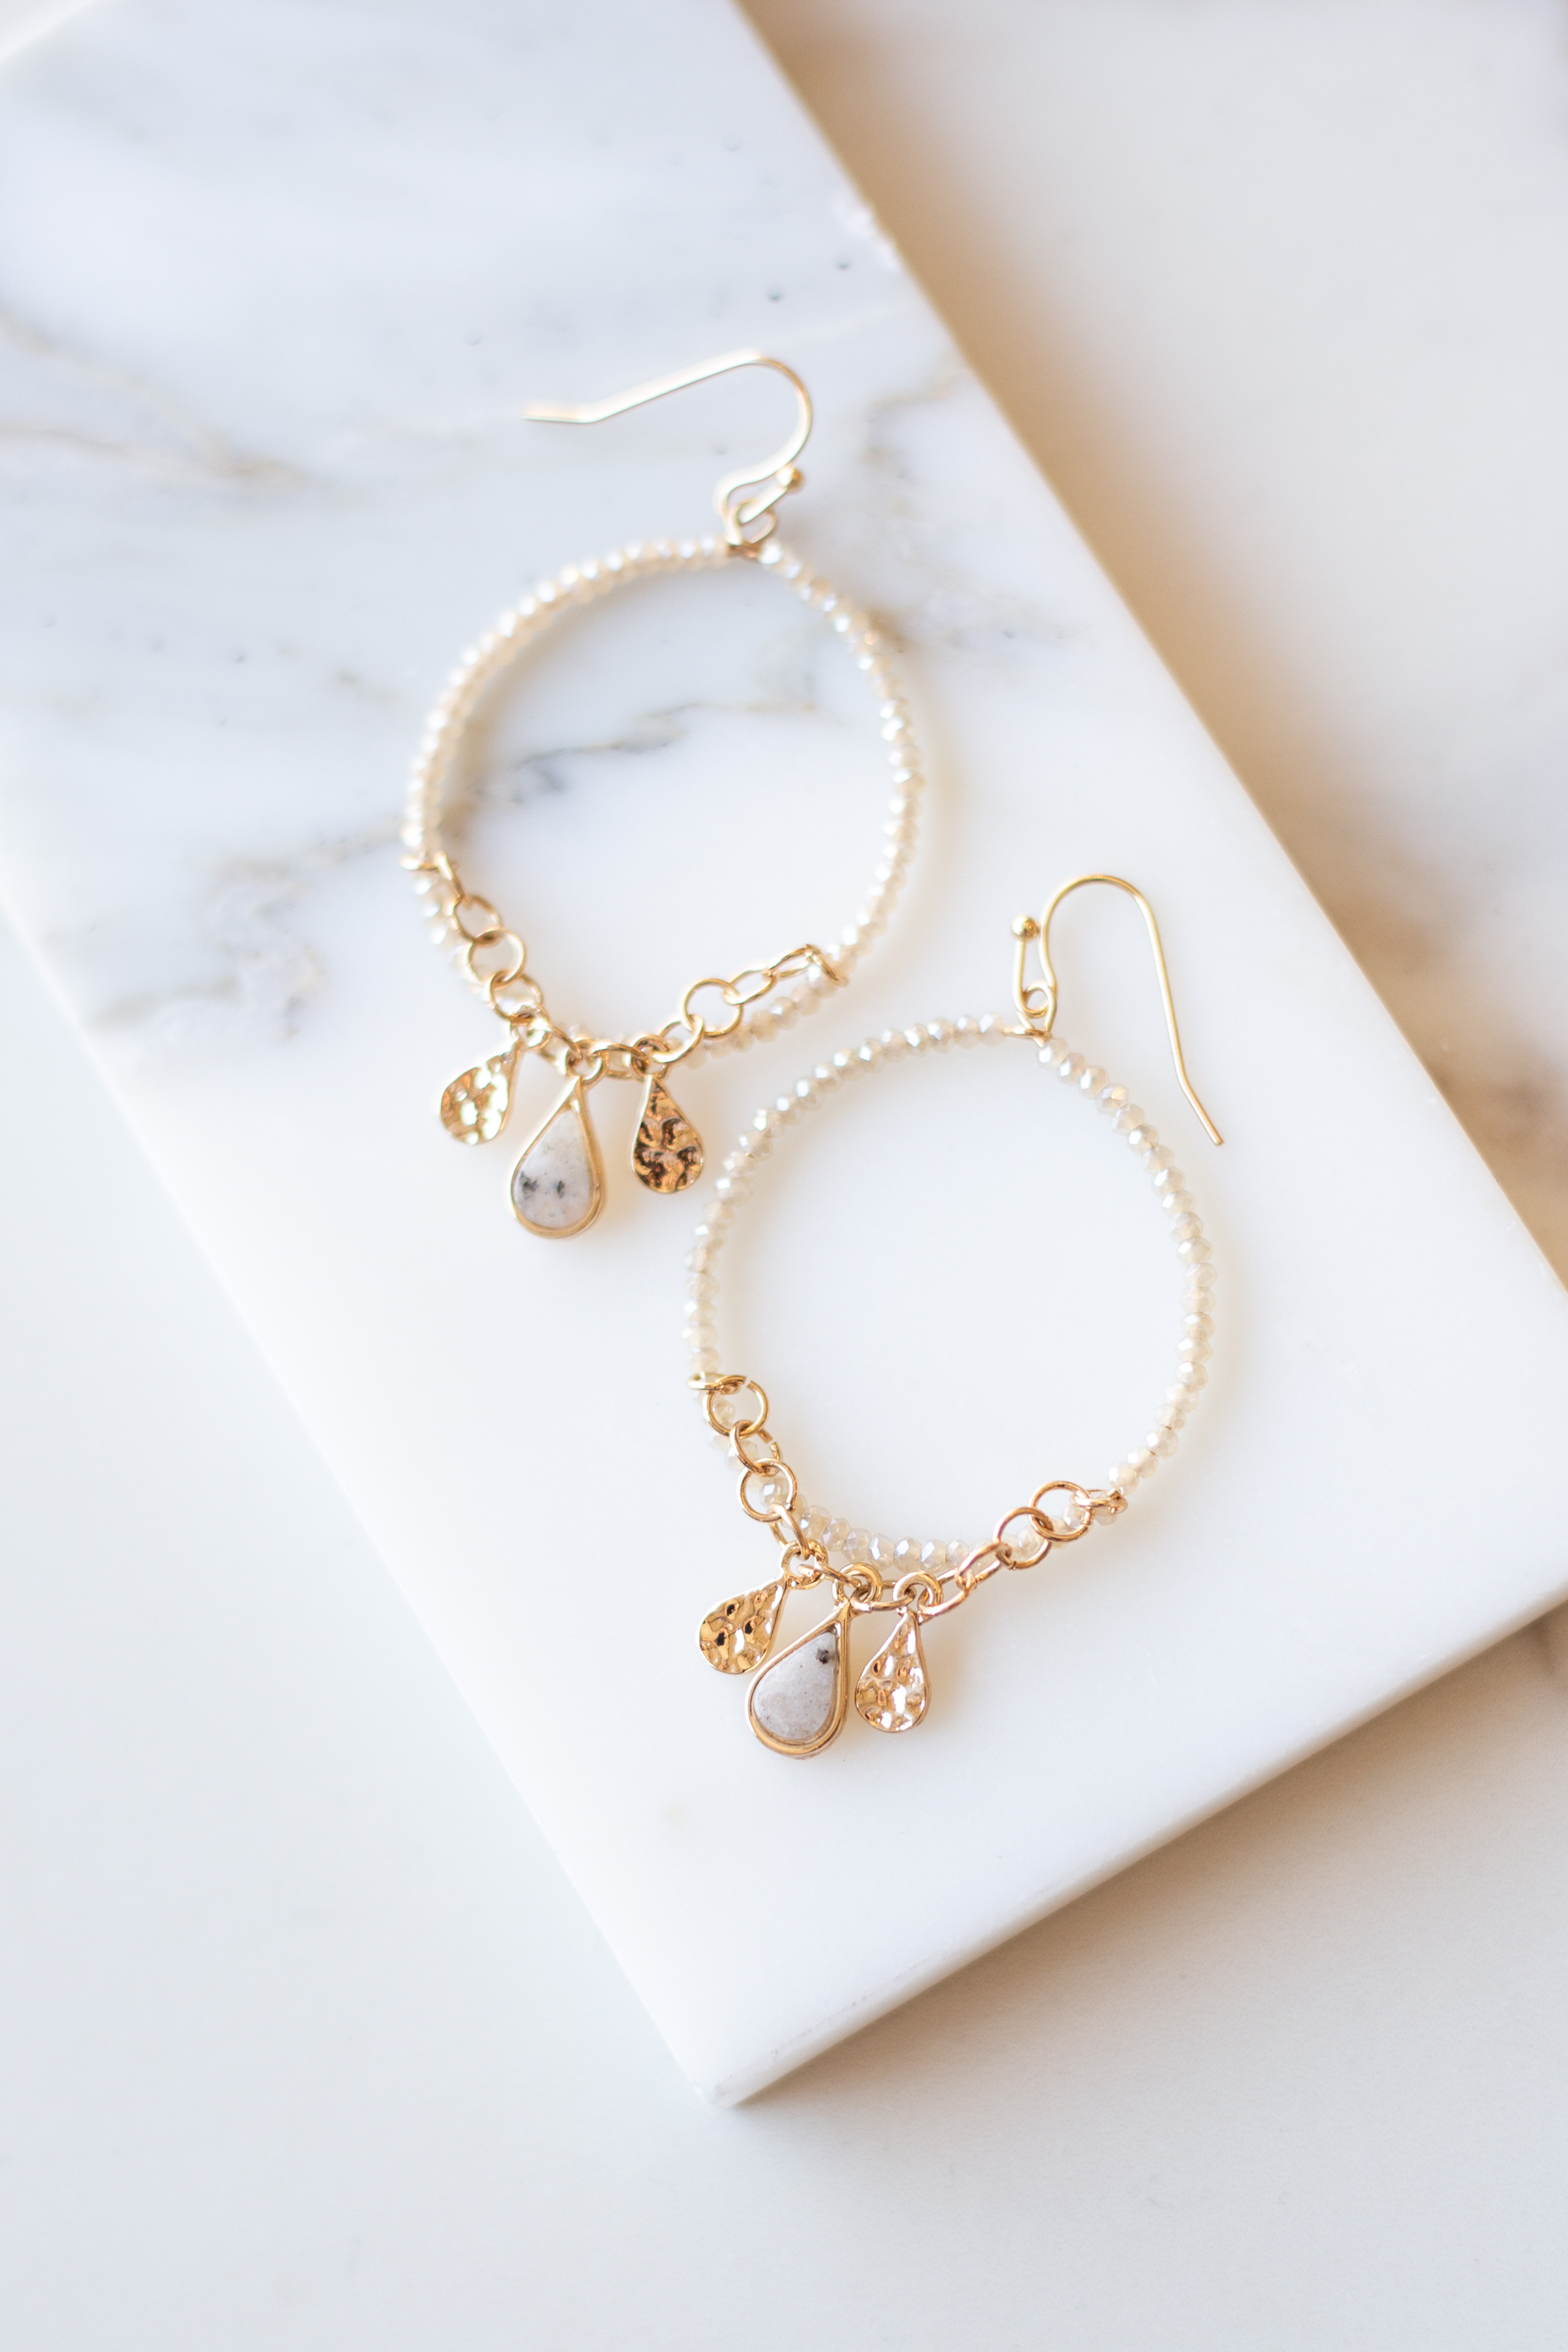 Ivory and Gold Hoop Earrings with Natural Gemstone Charms